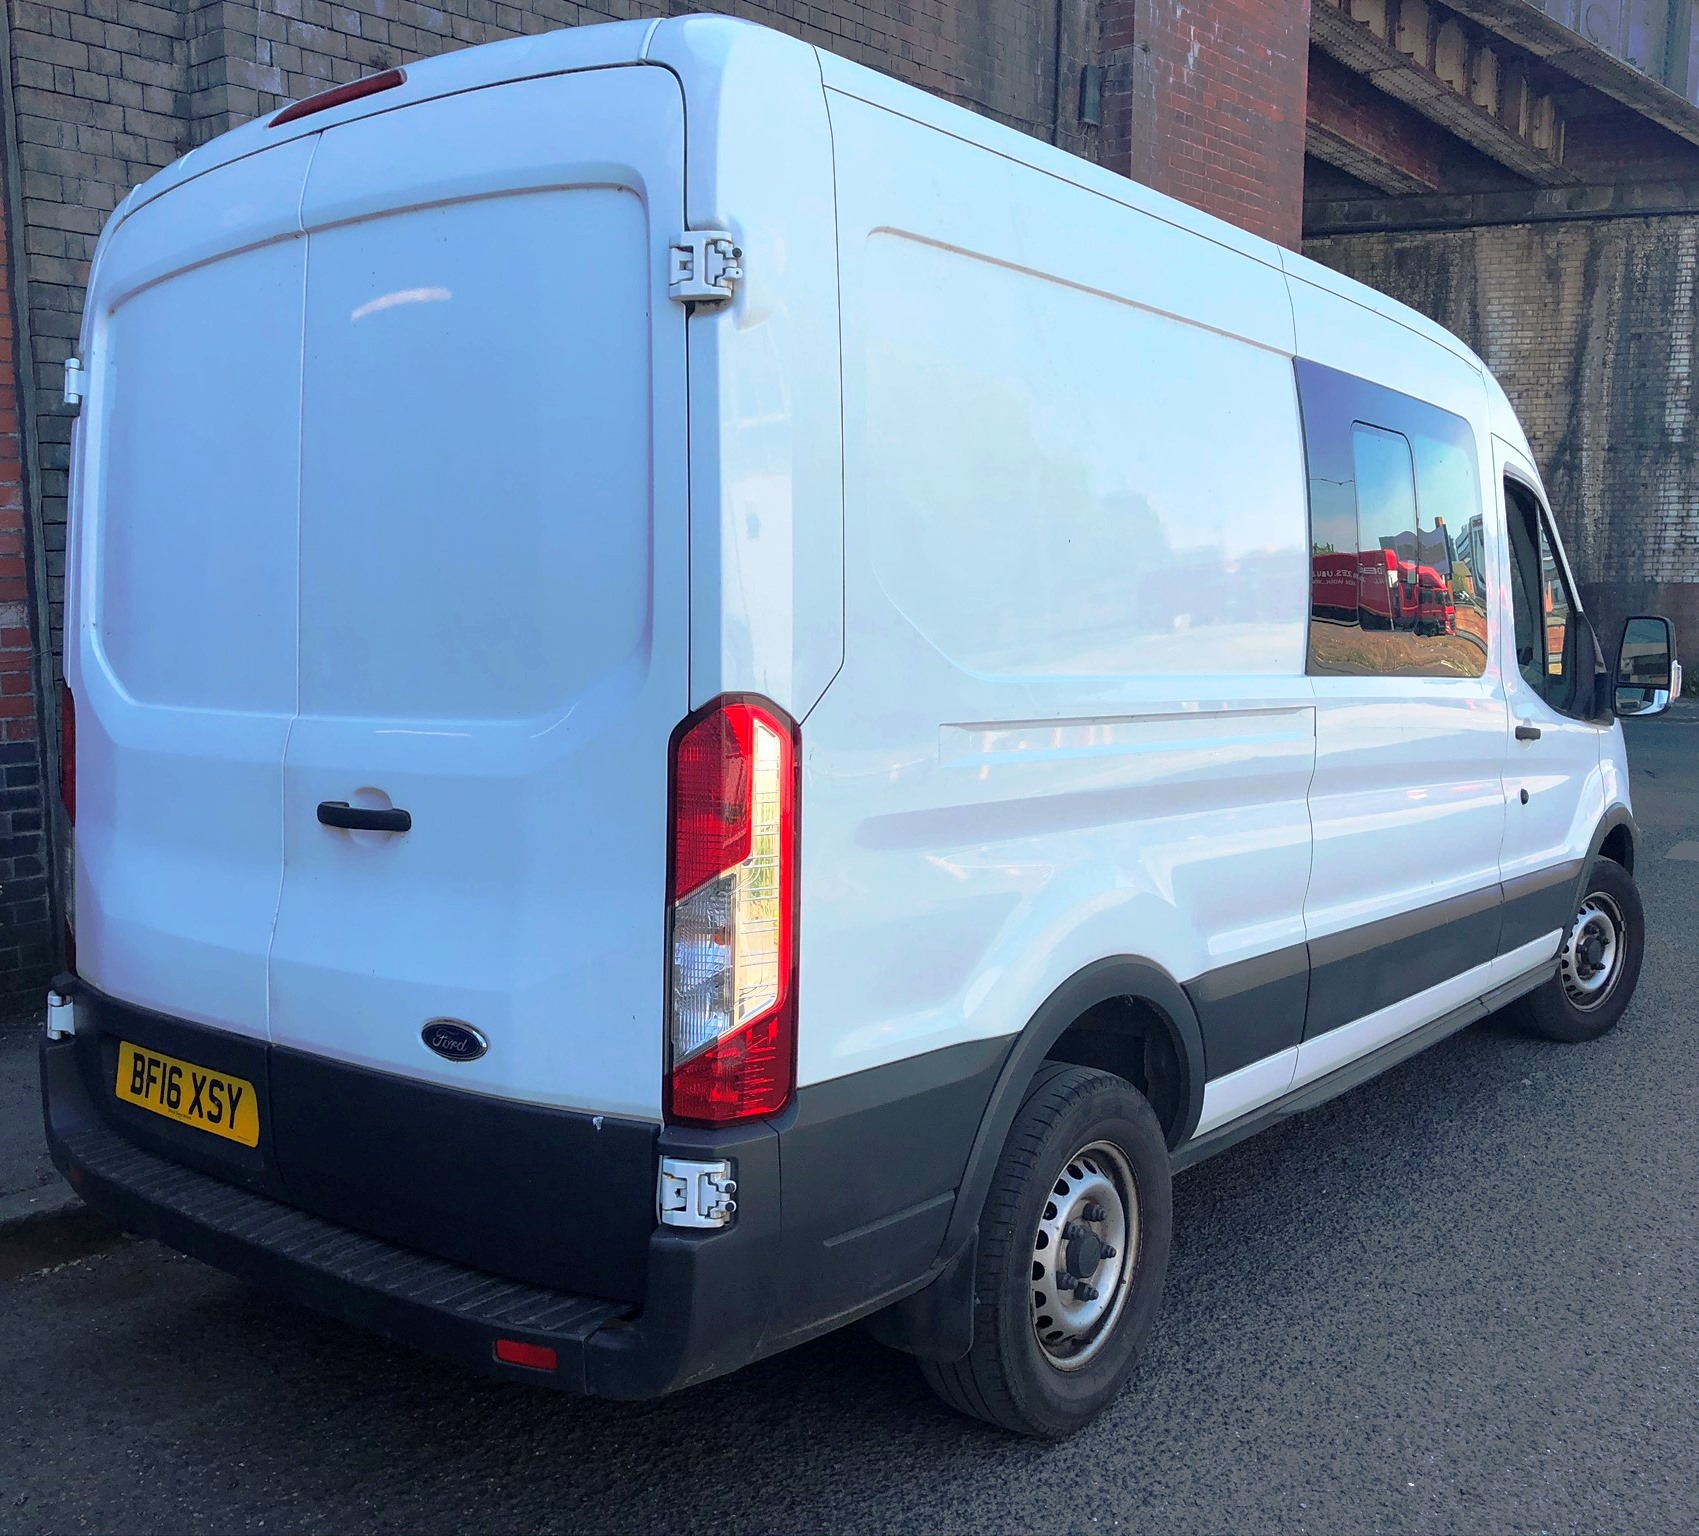 White Ford Transit 350 Econetic Tech Panel Van | Reg: BF16 XSY| 7 Seater | Mileage: 46,808 - Image 5 of 9